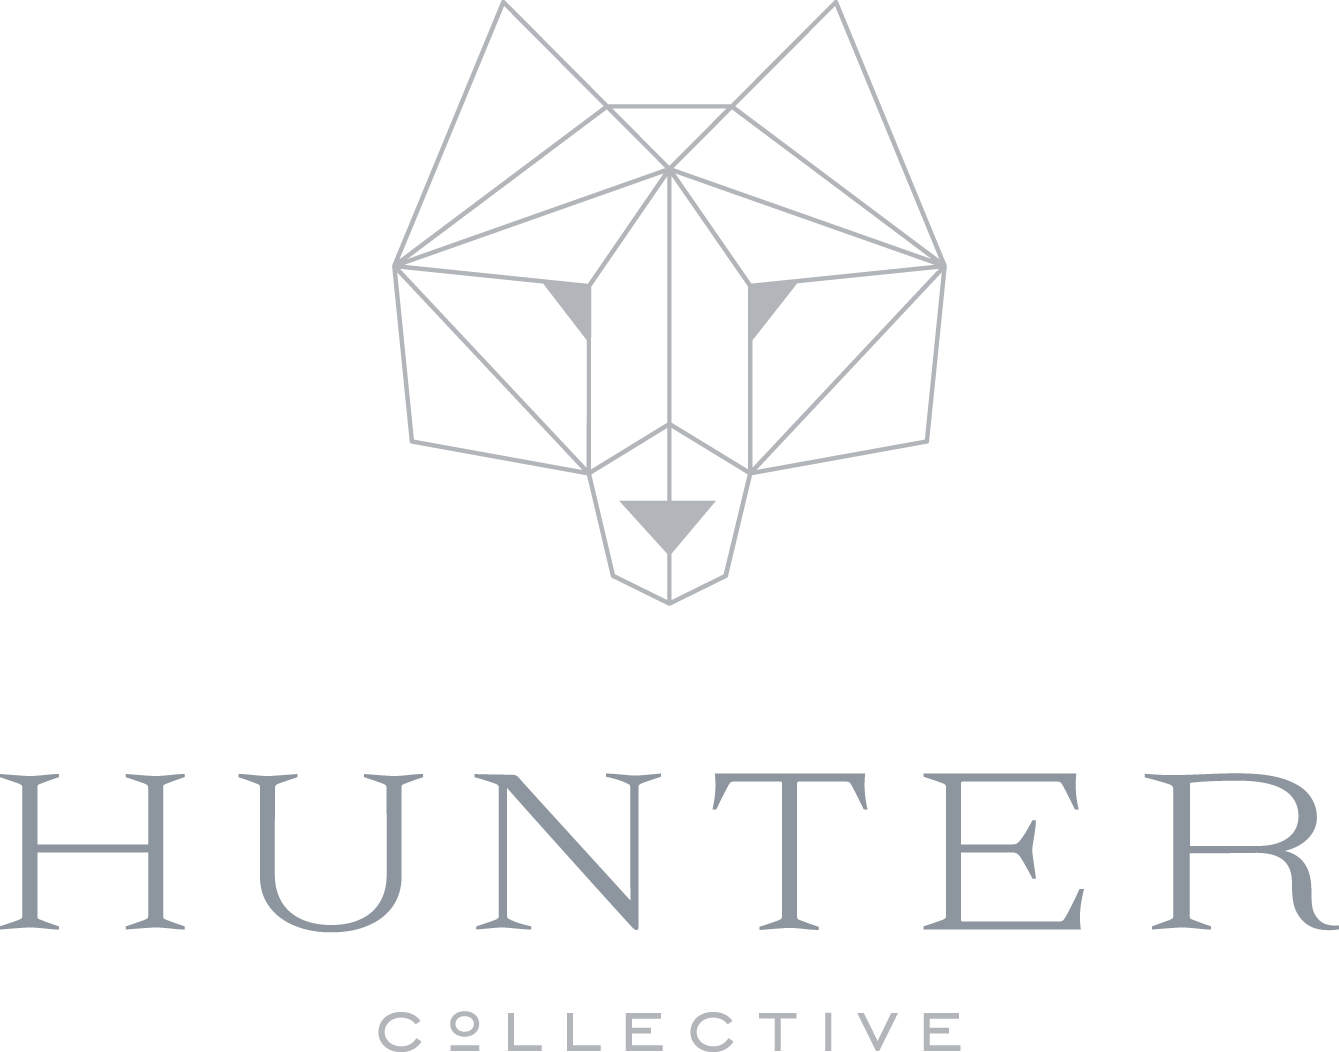 Hunter Collective